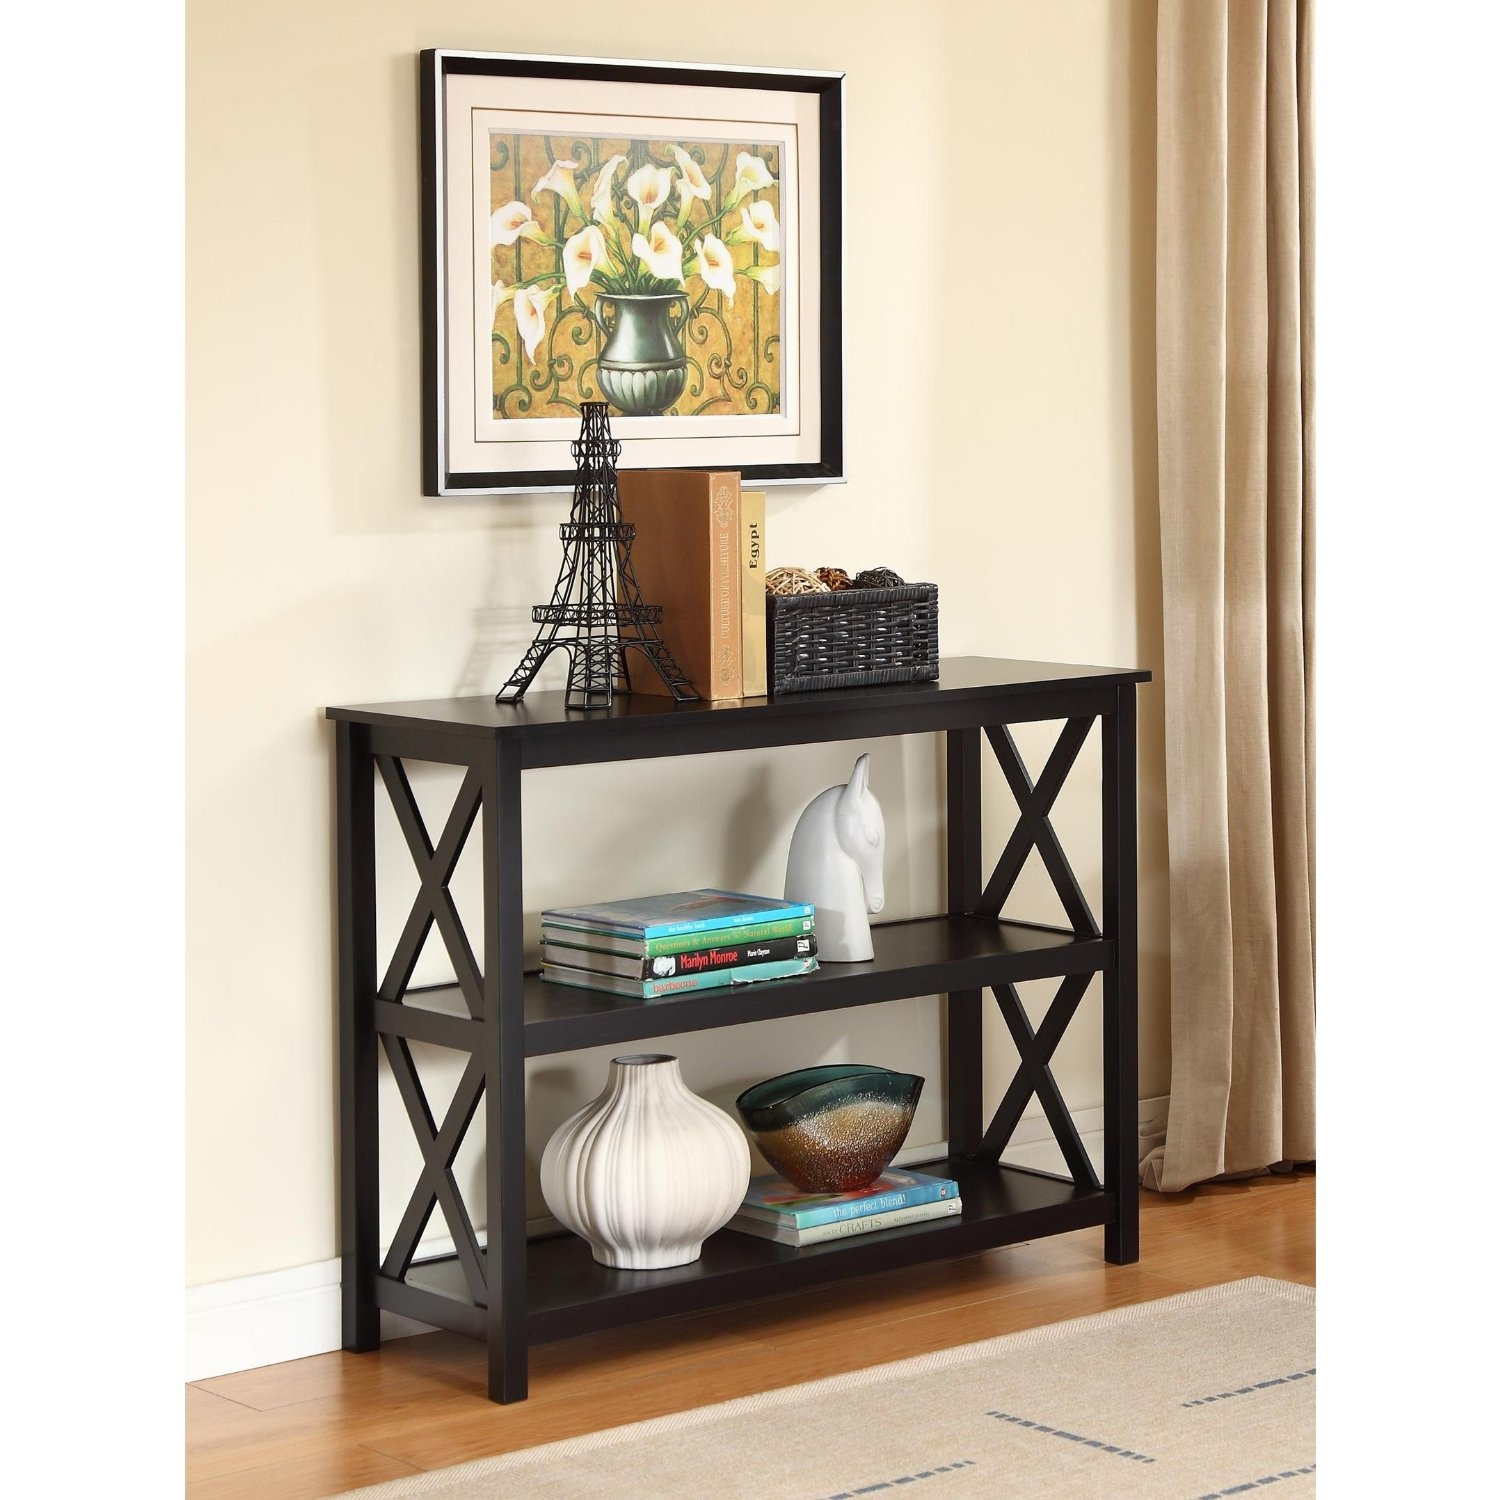 3 tier black sofa table bookcase living room shelves. Black Bedroom Furniture Sets. Home Design Ideas